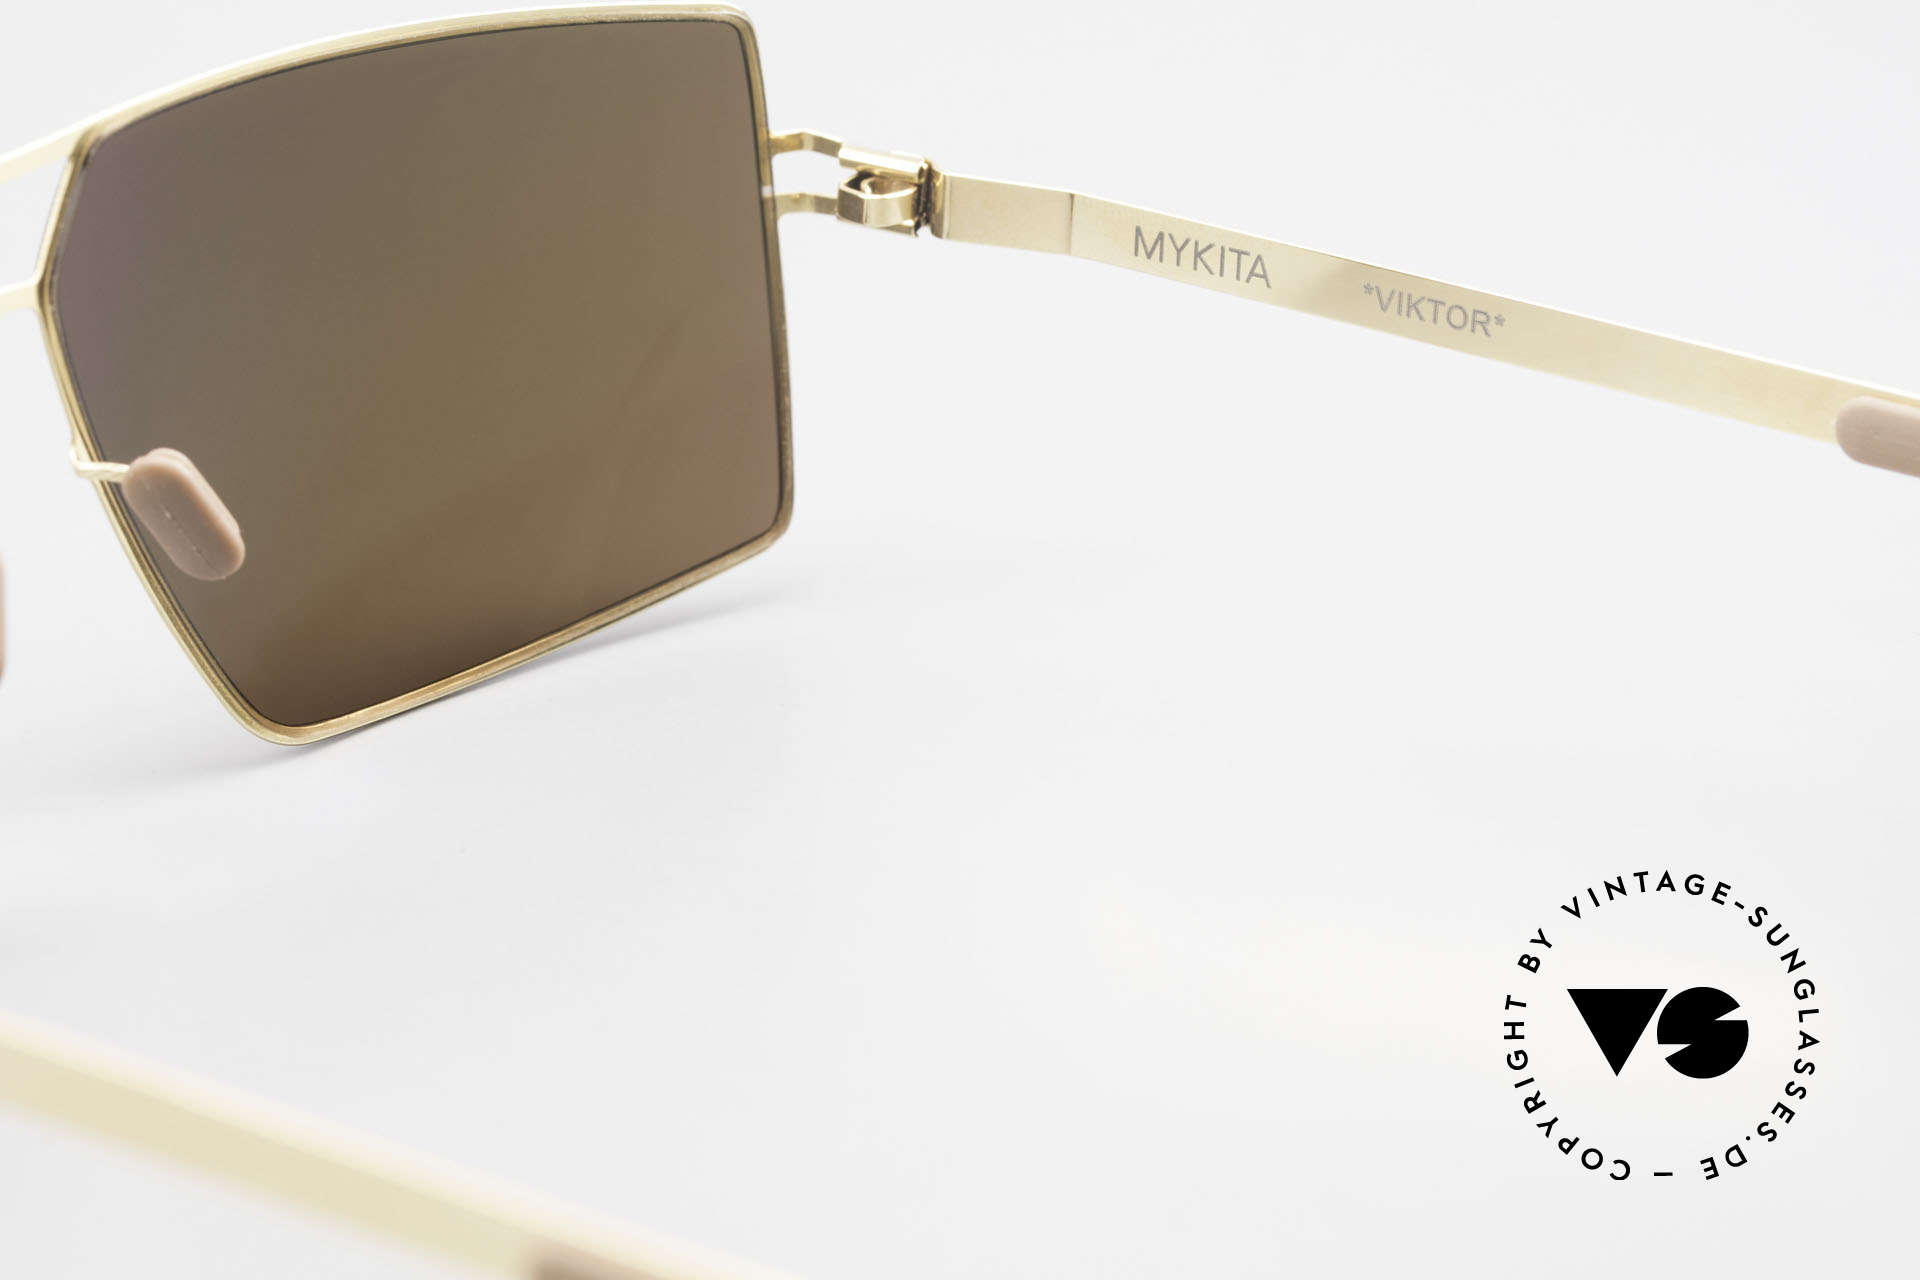 Mykita Viktor Square Designer Sunglasses, thus, now available from us (unworn and with orig. case), Made for Men